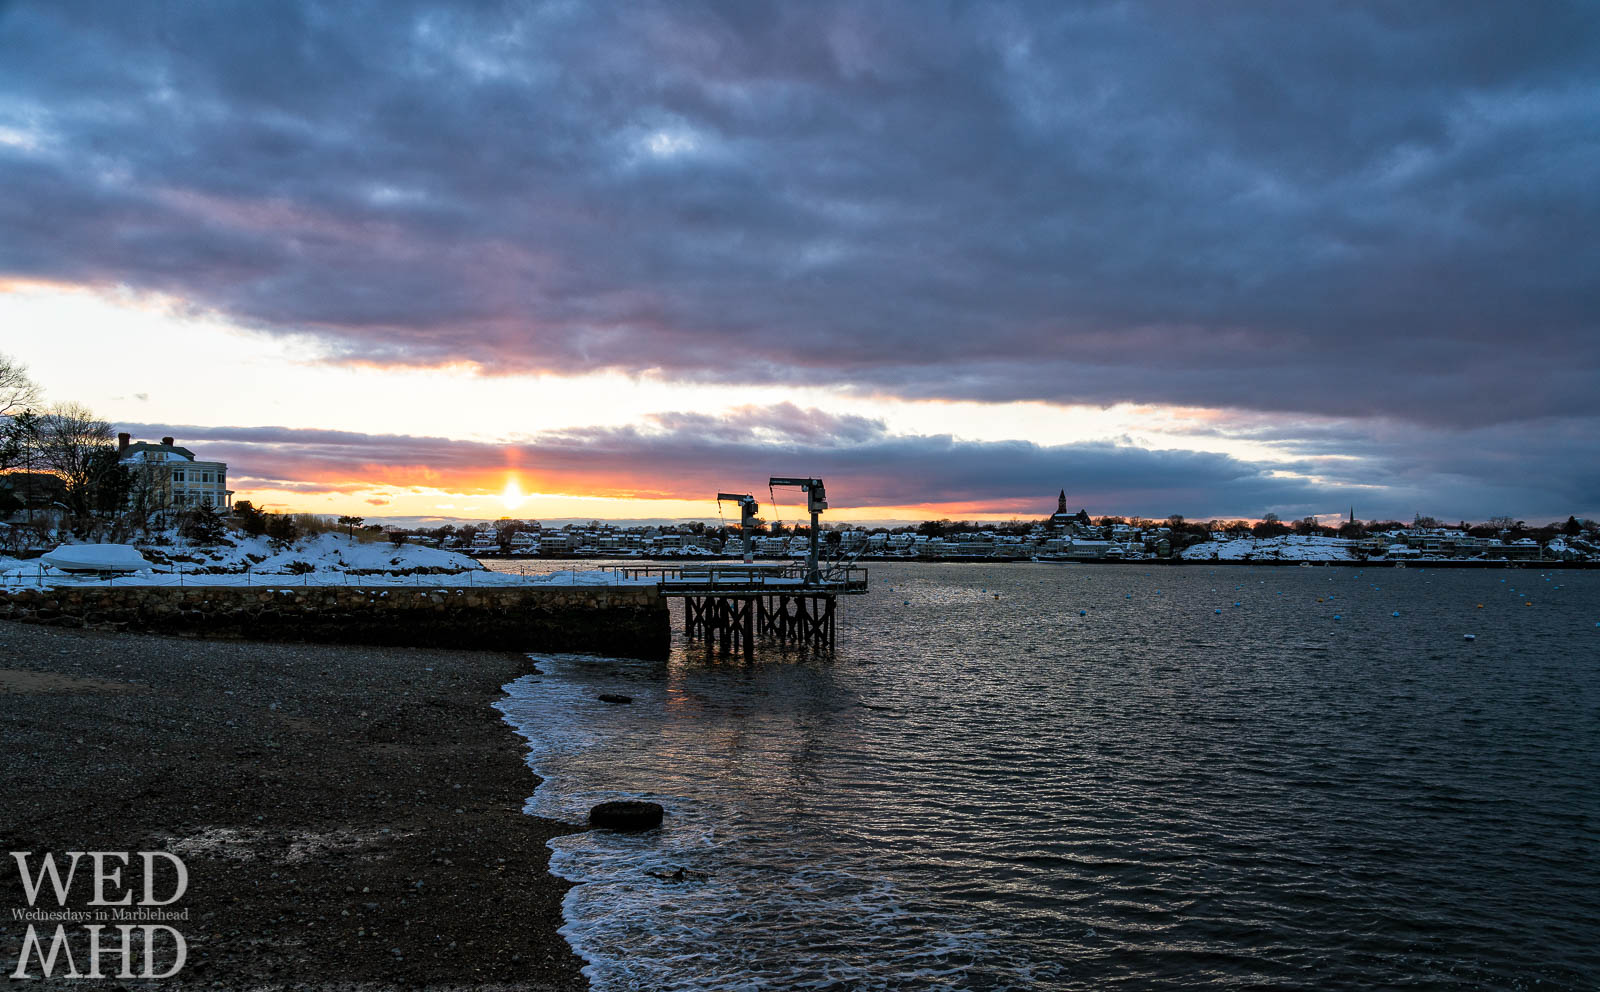 A sun pillar forms over Marblehead Harbor with the water coming ashore at low tide and the town blanketed in fresh snow